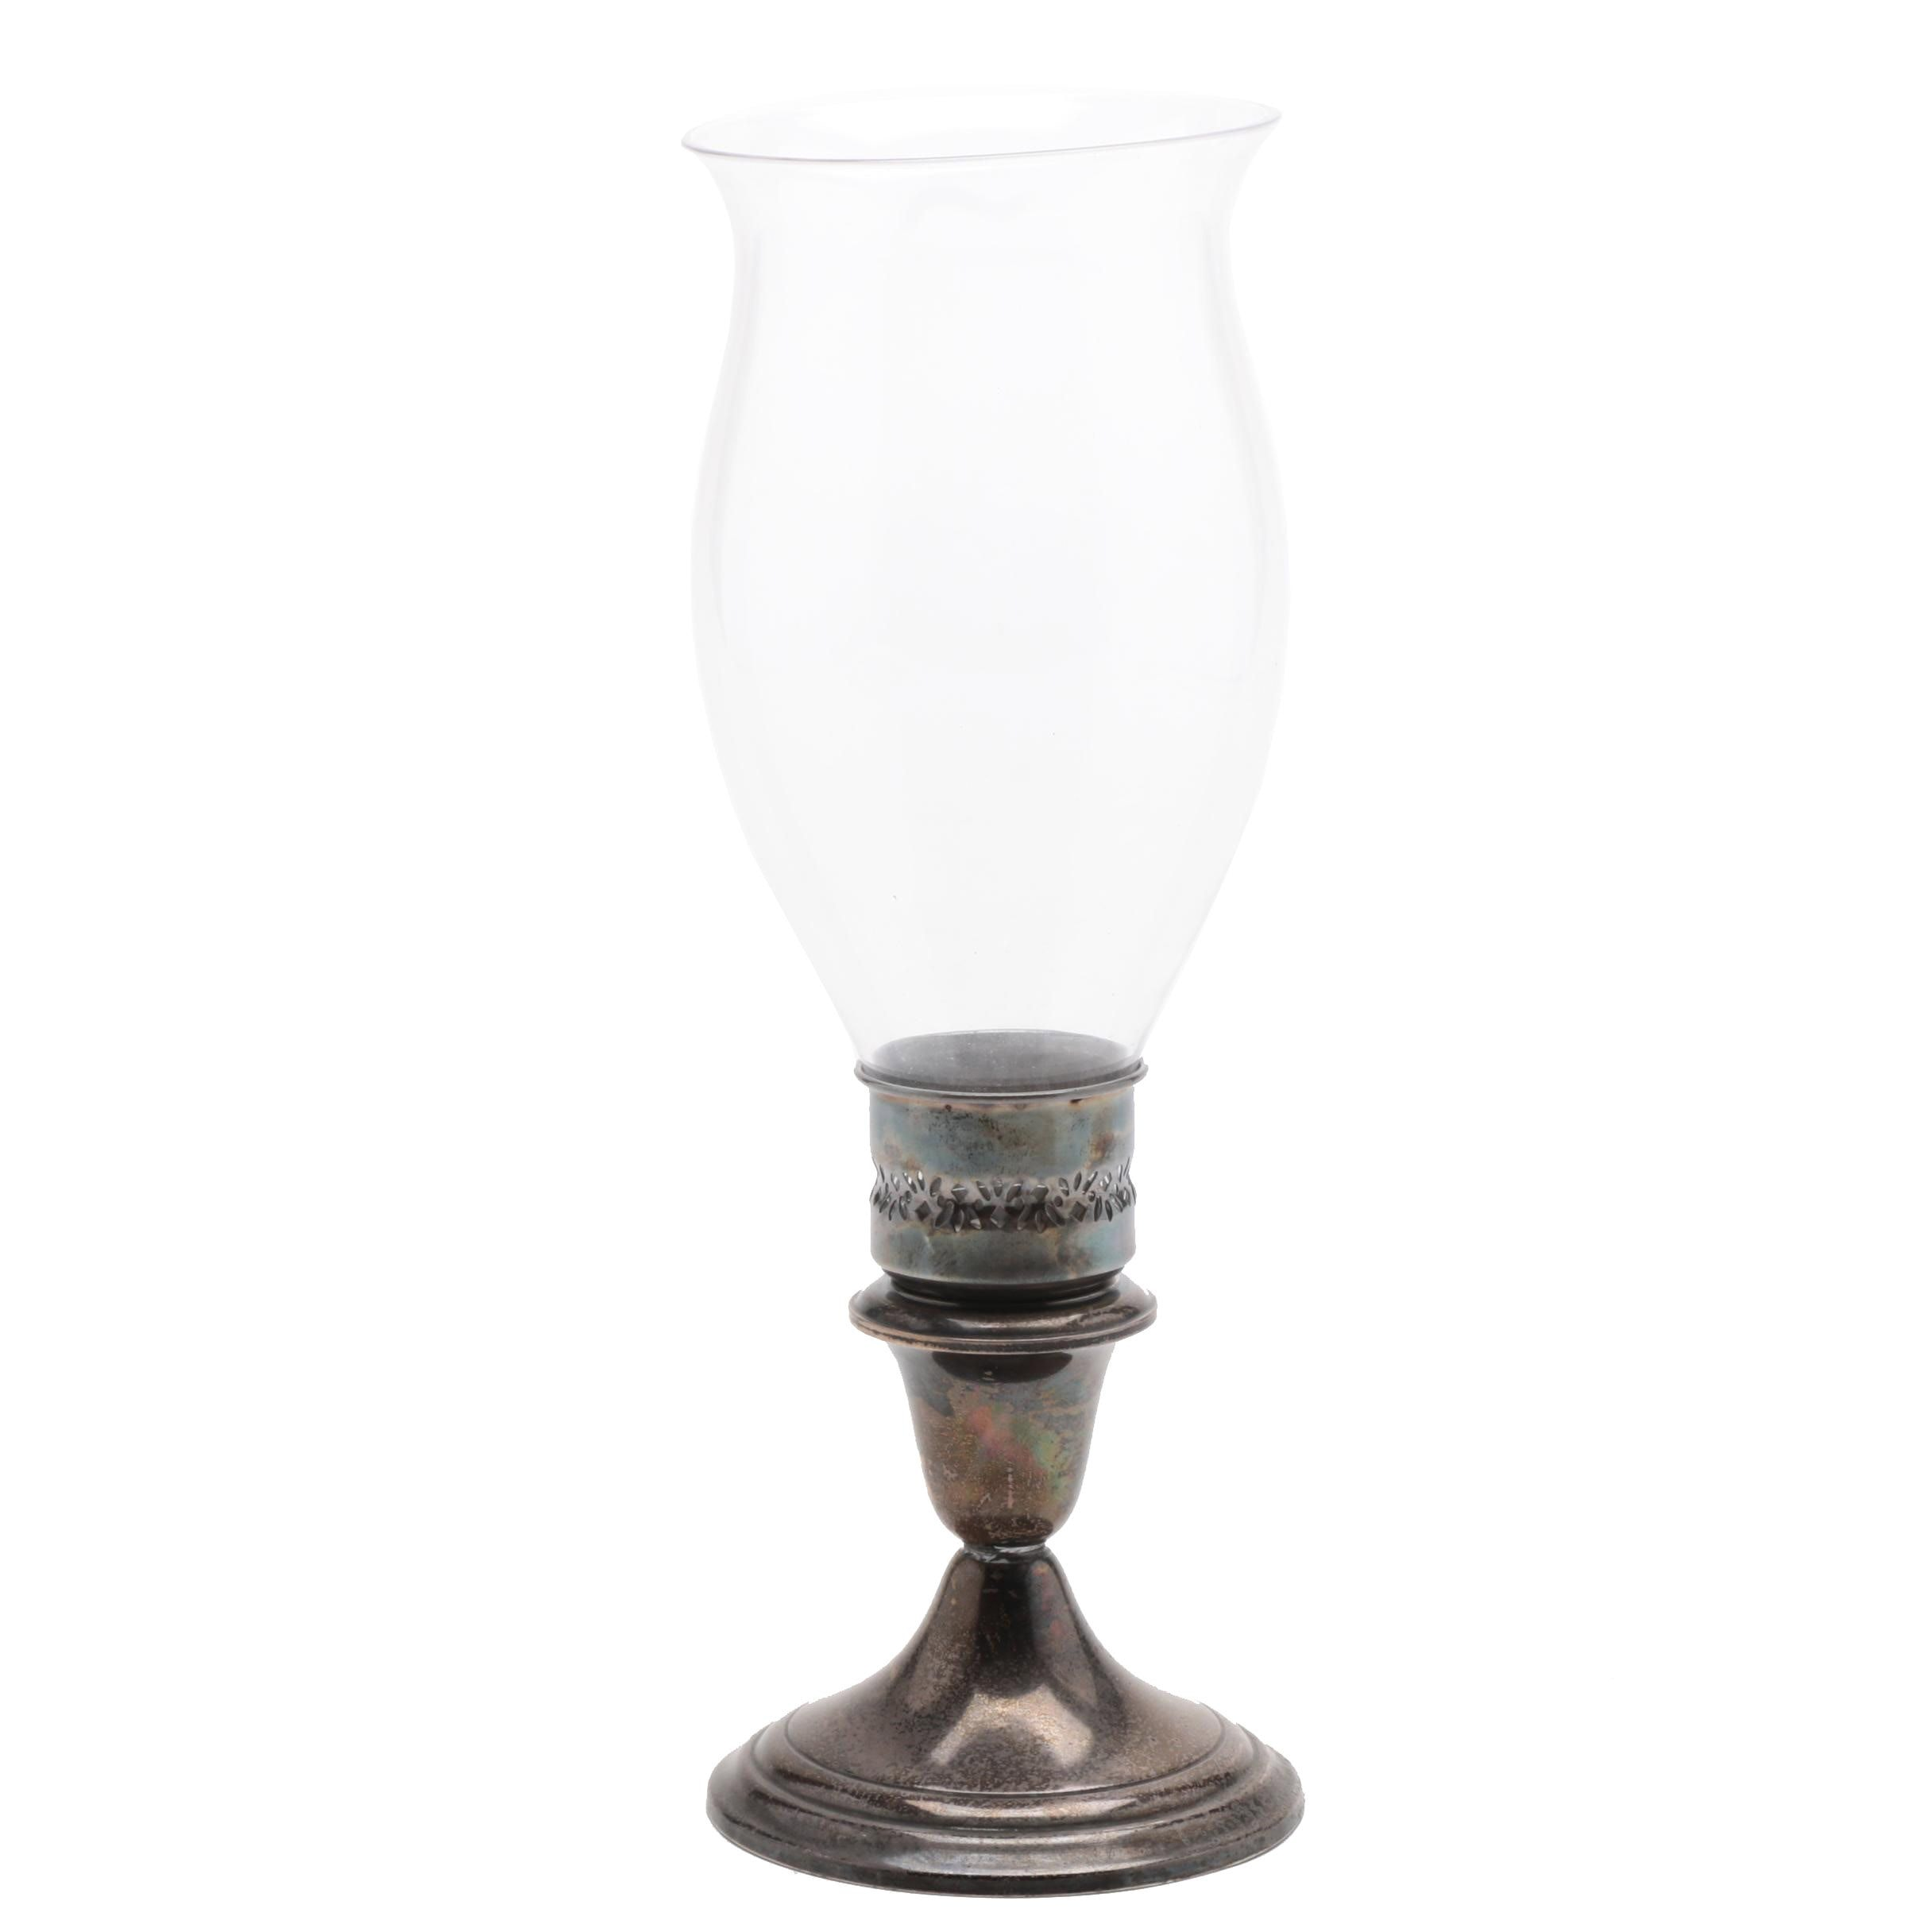 Gorham Weighted Sterling Silver Candleholder With Hurricane Shade